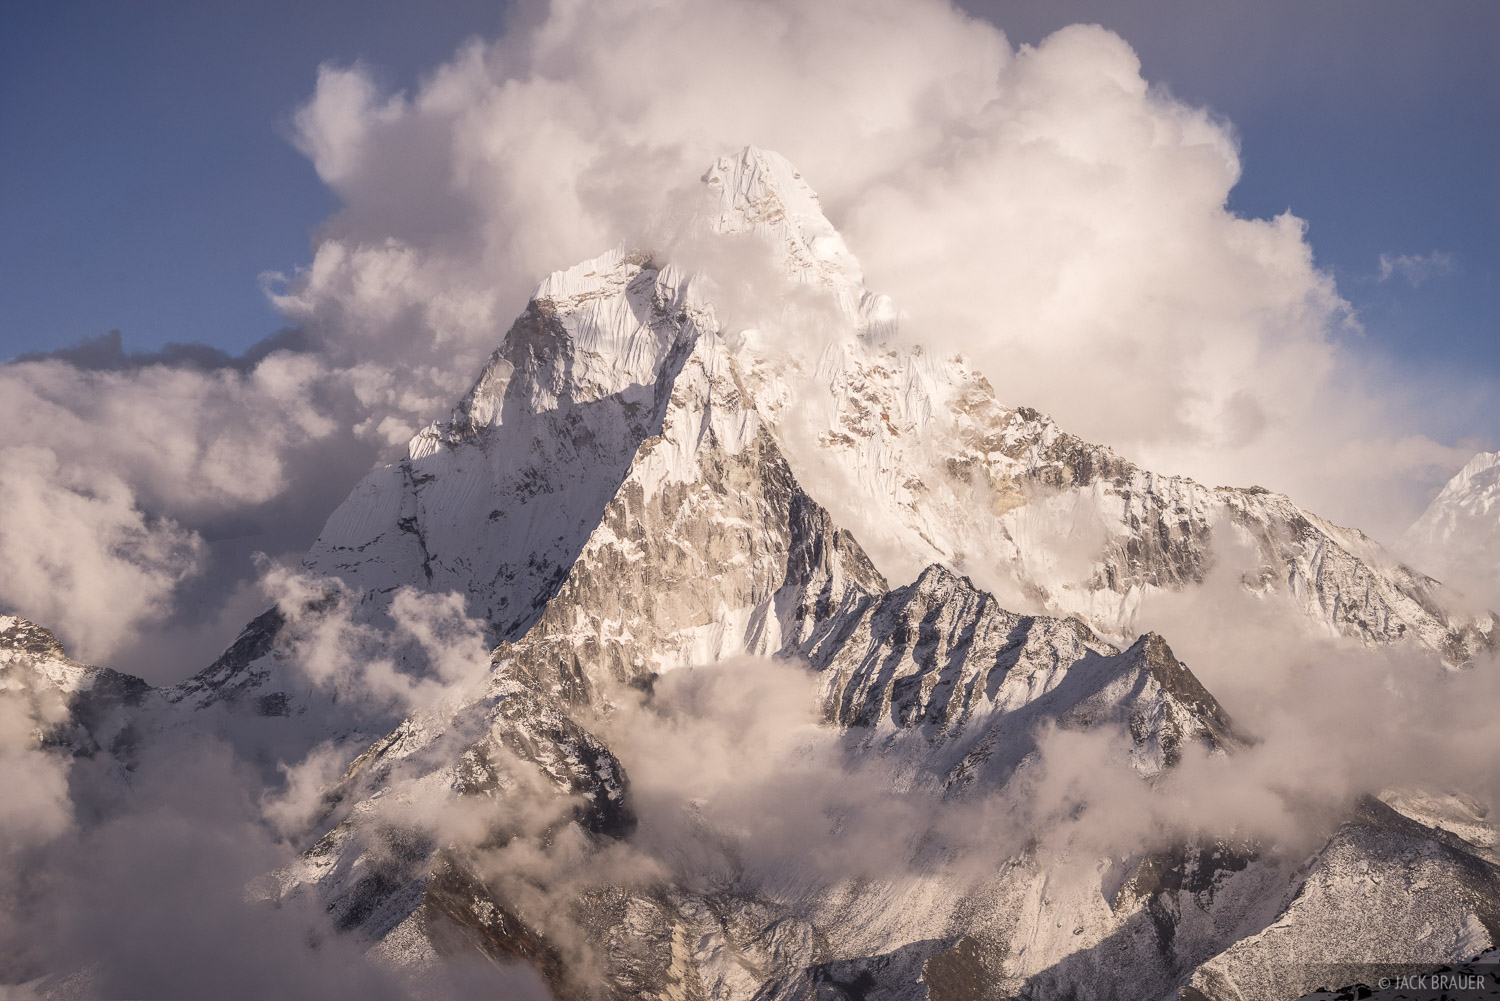 Ama Dablam (6856m / 22,493 ft) emerges from the clouds.